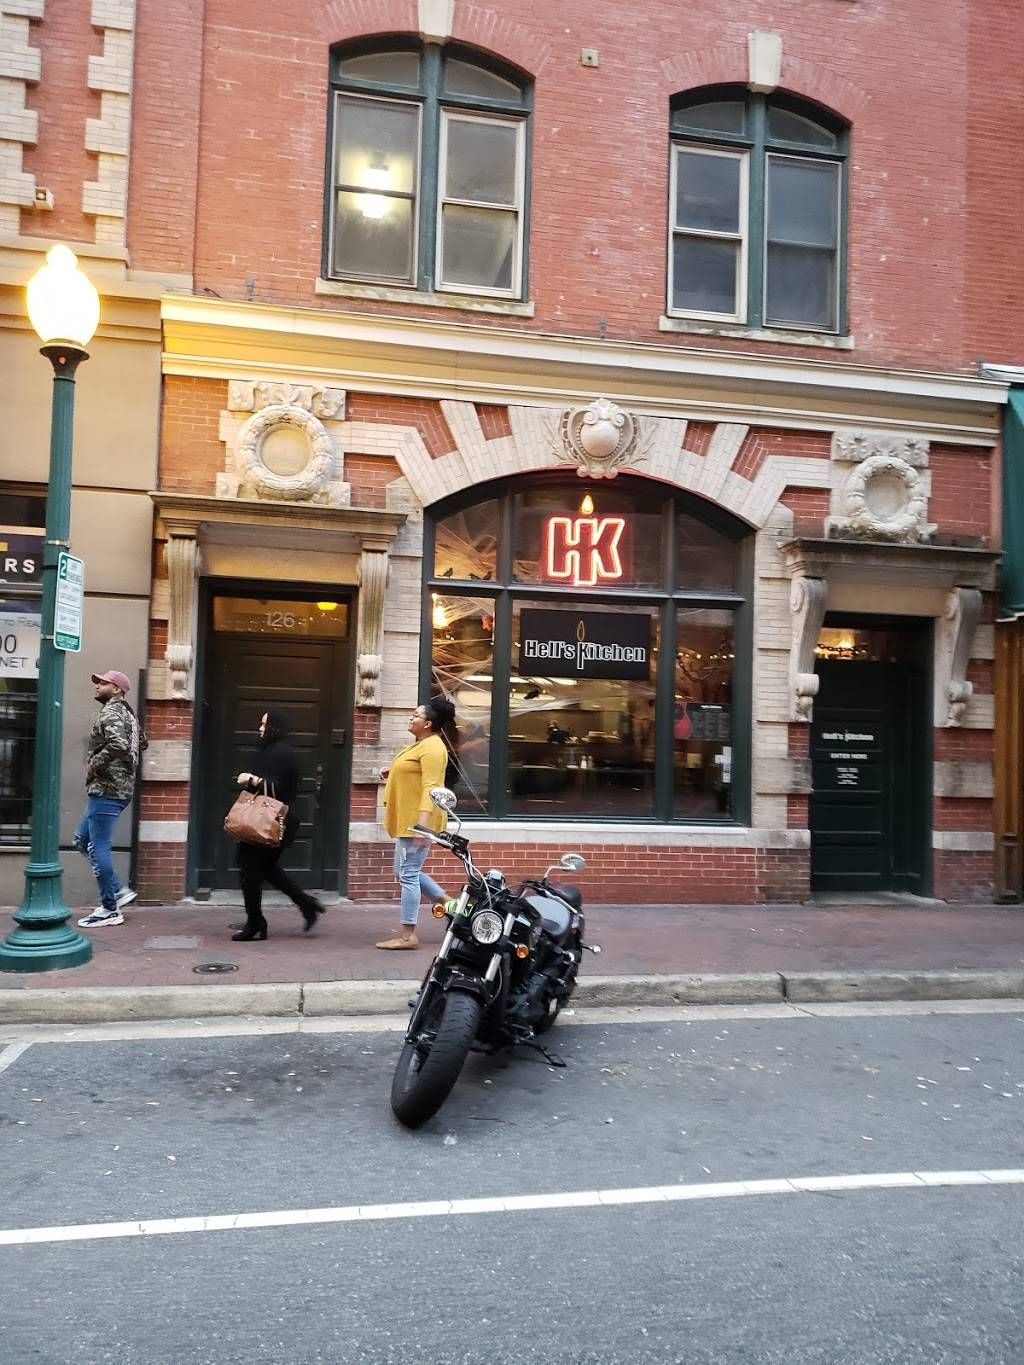 Hells Kitchen | restaurant | 124 Granby St, Norfolk, VA 23510, USA | 7576241906 OR +1 757-624-1906